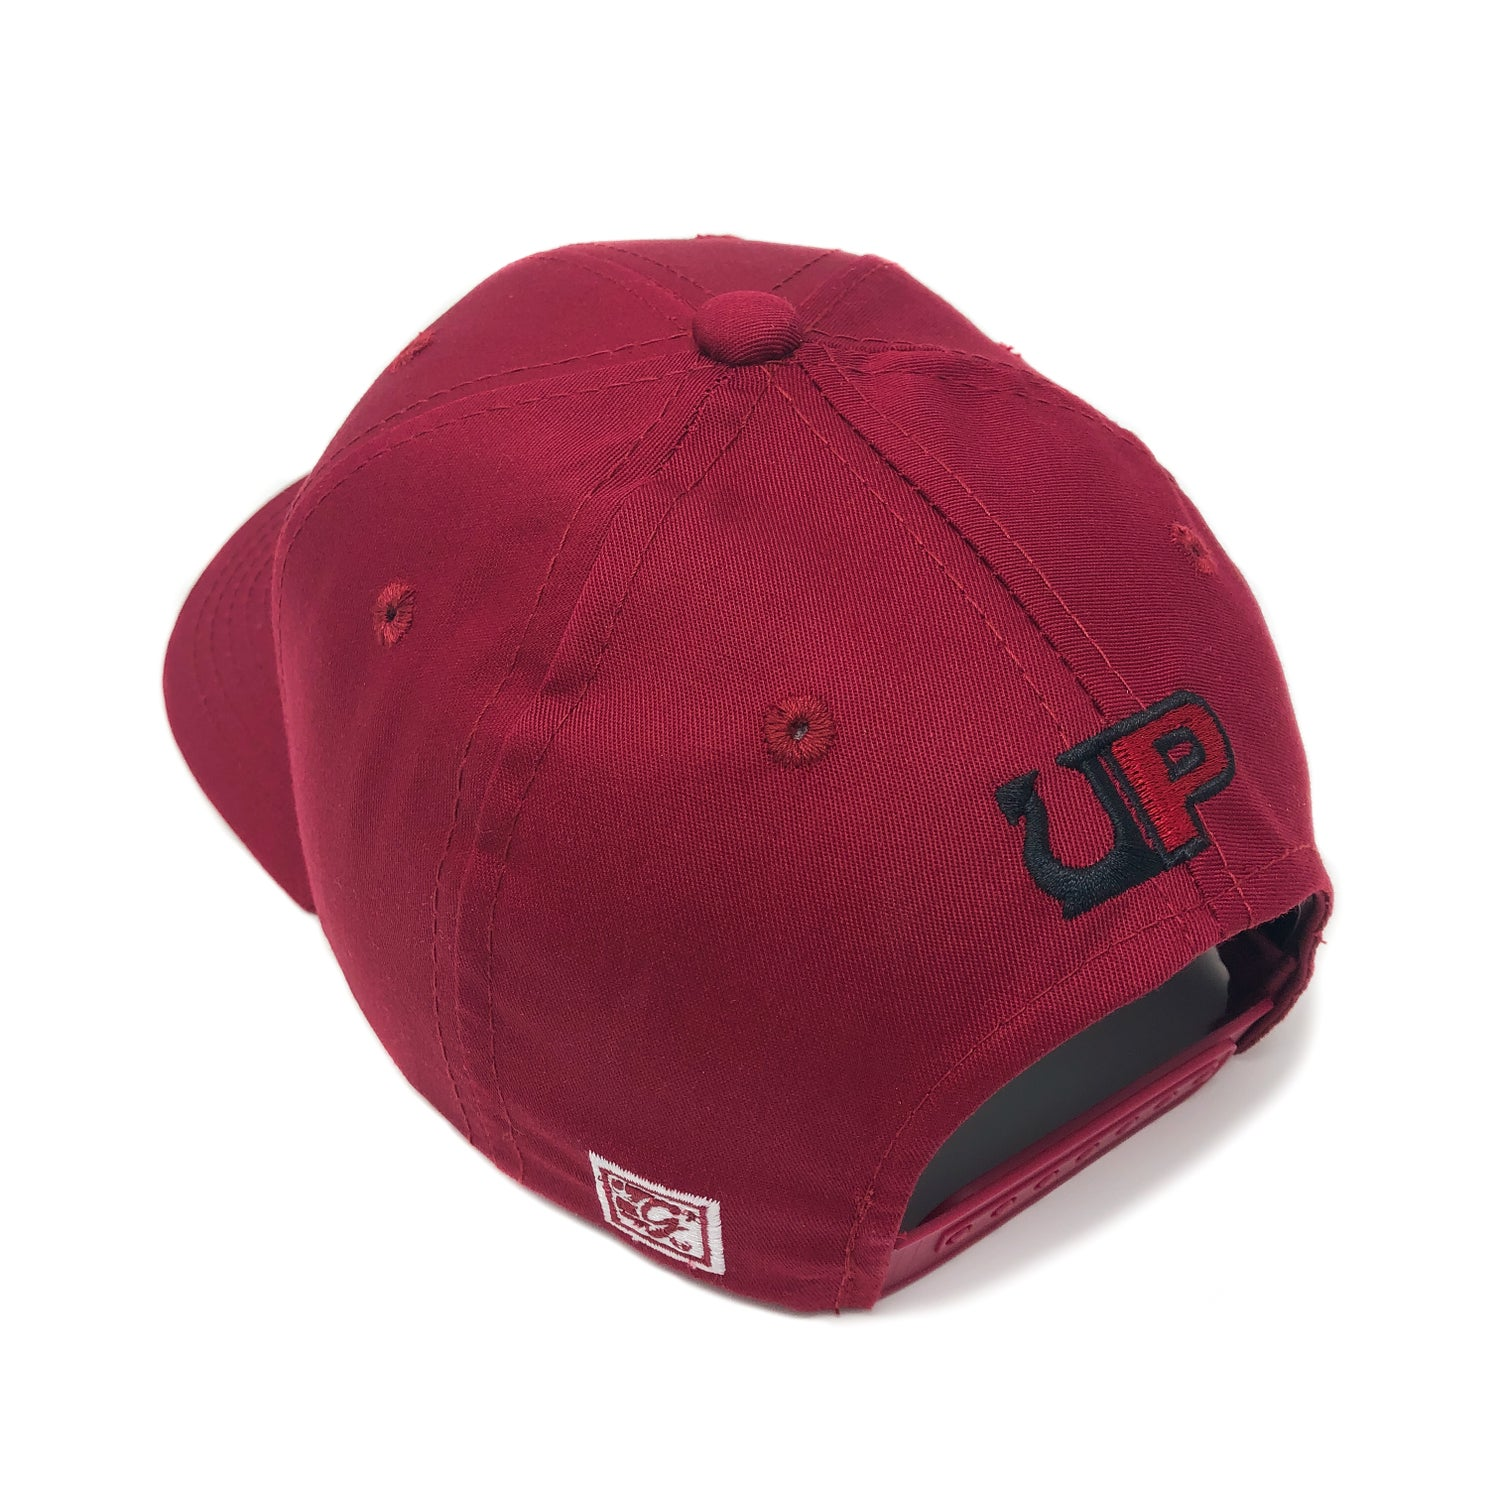 Image of UP / THE GAME HAT - CAMP - Scarlett/Black